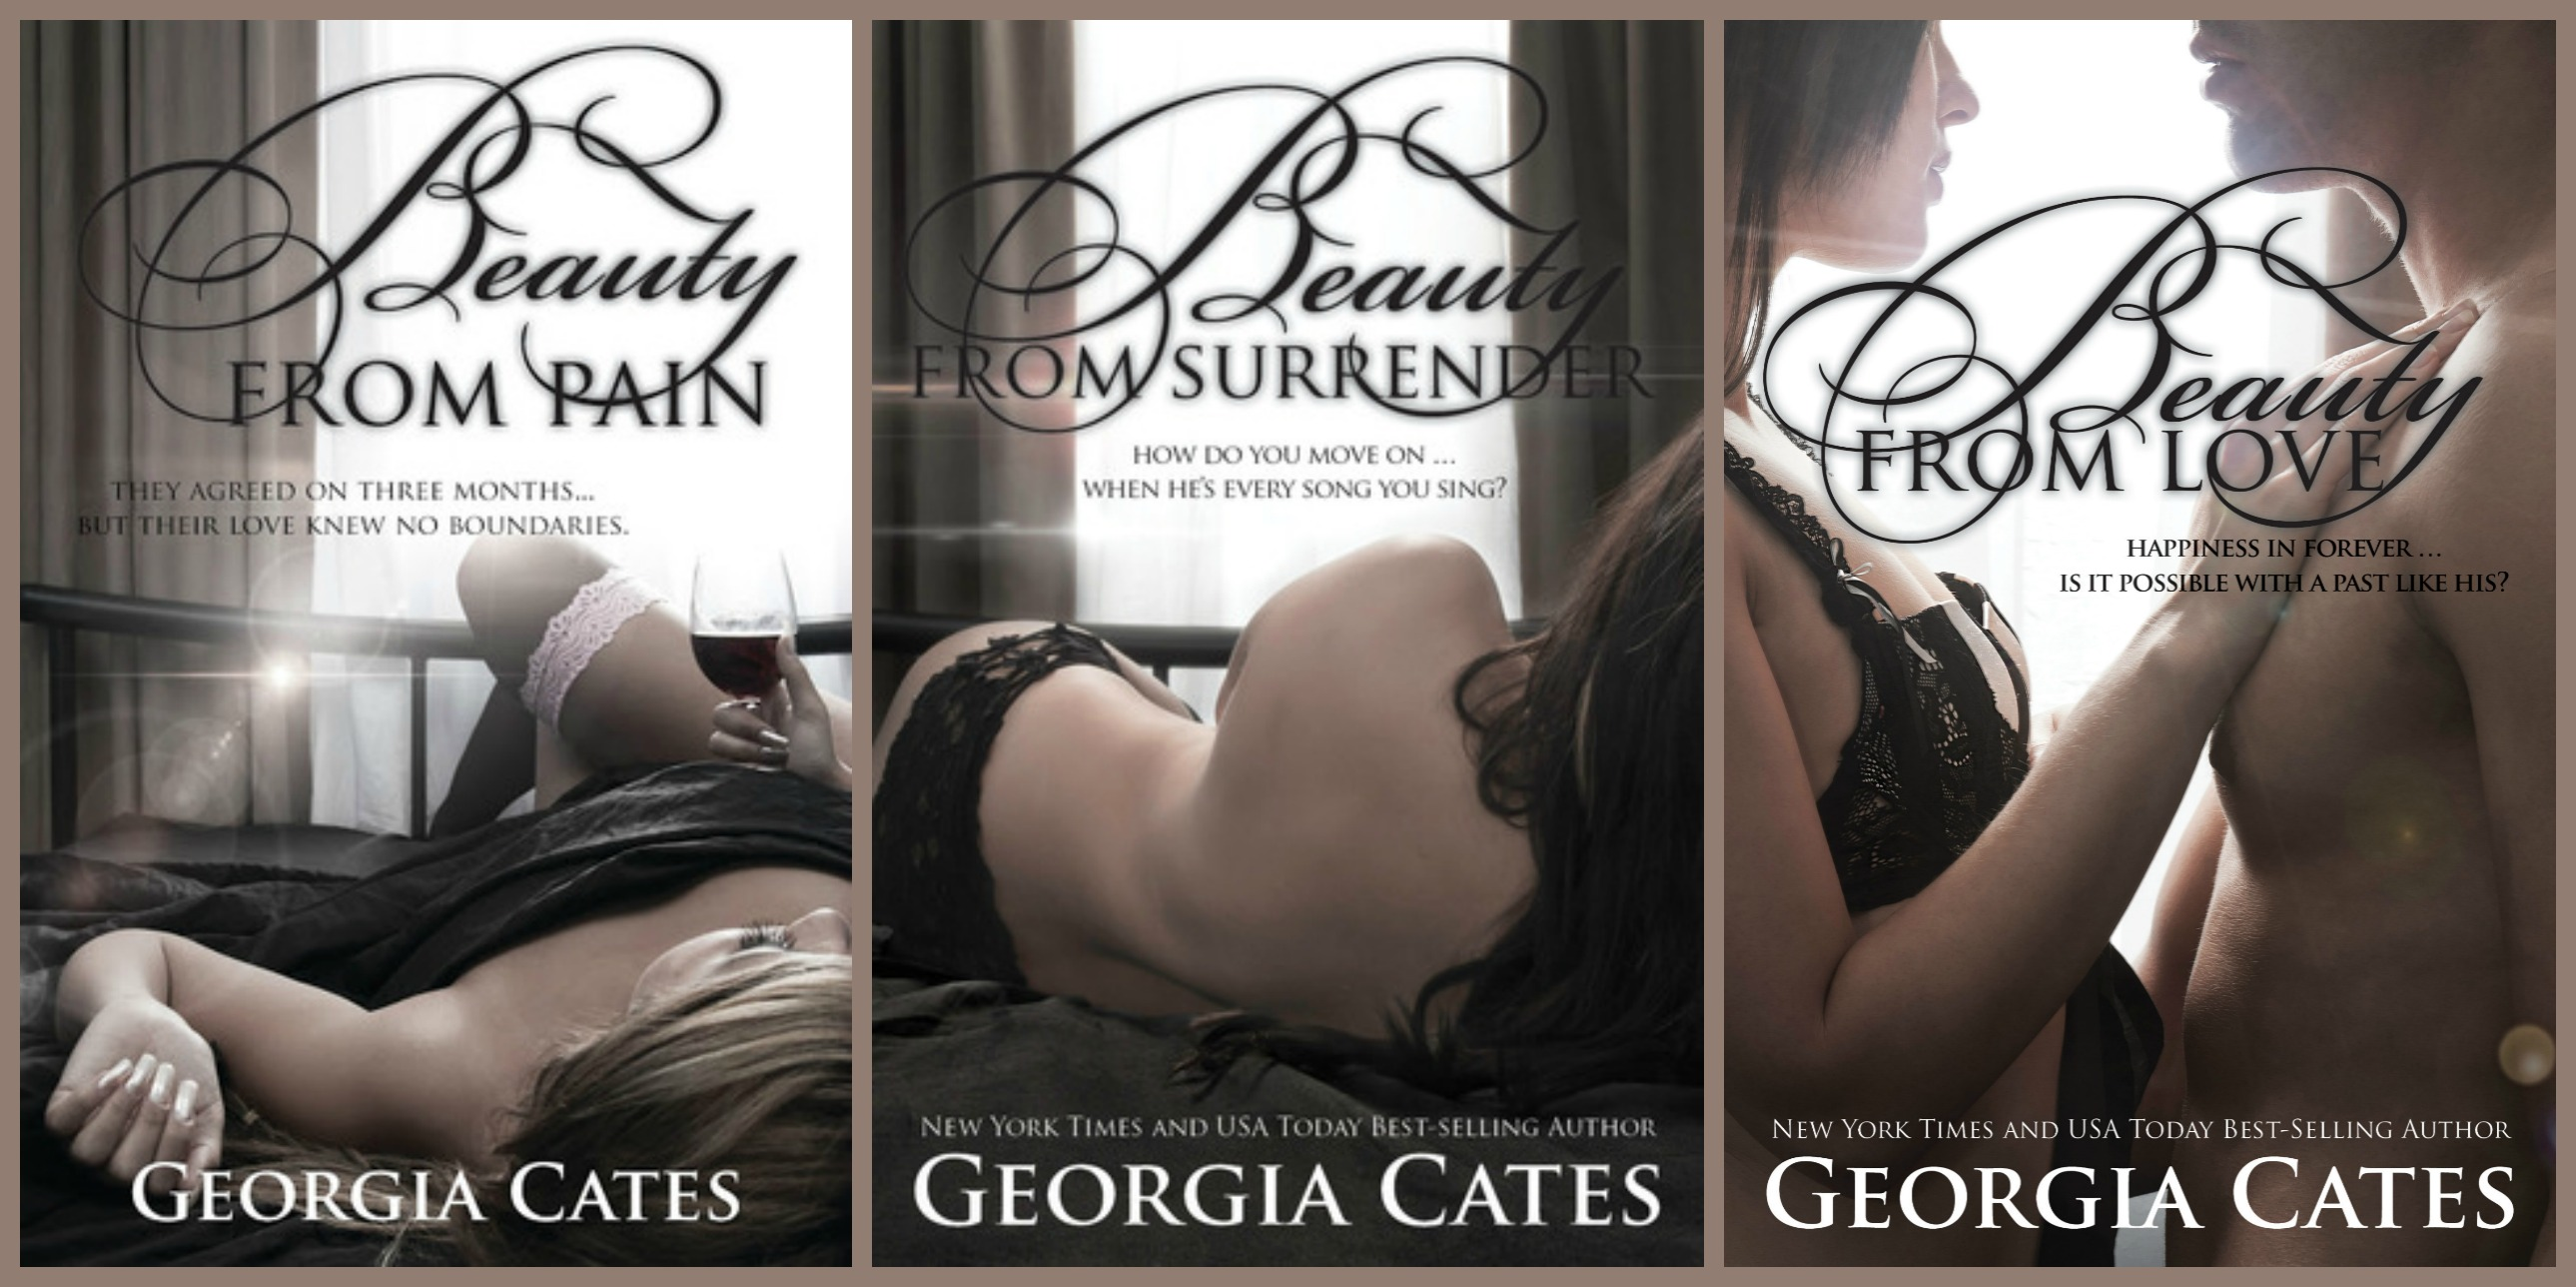 Release Blitz and Giveaway – Beauty from Love by Georgia Cates